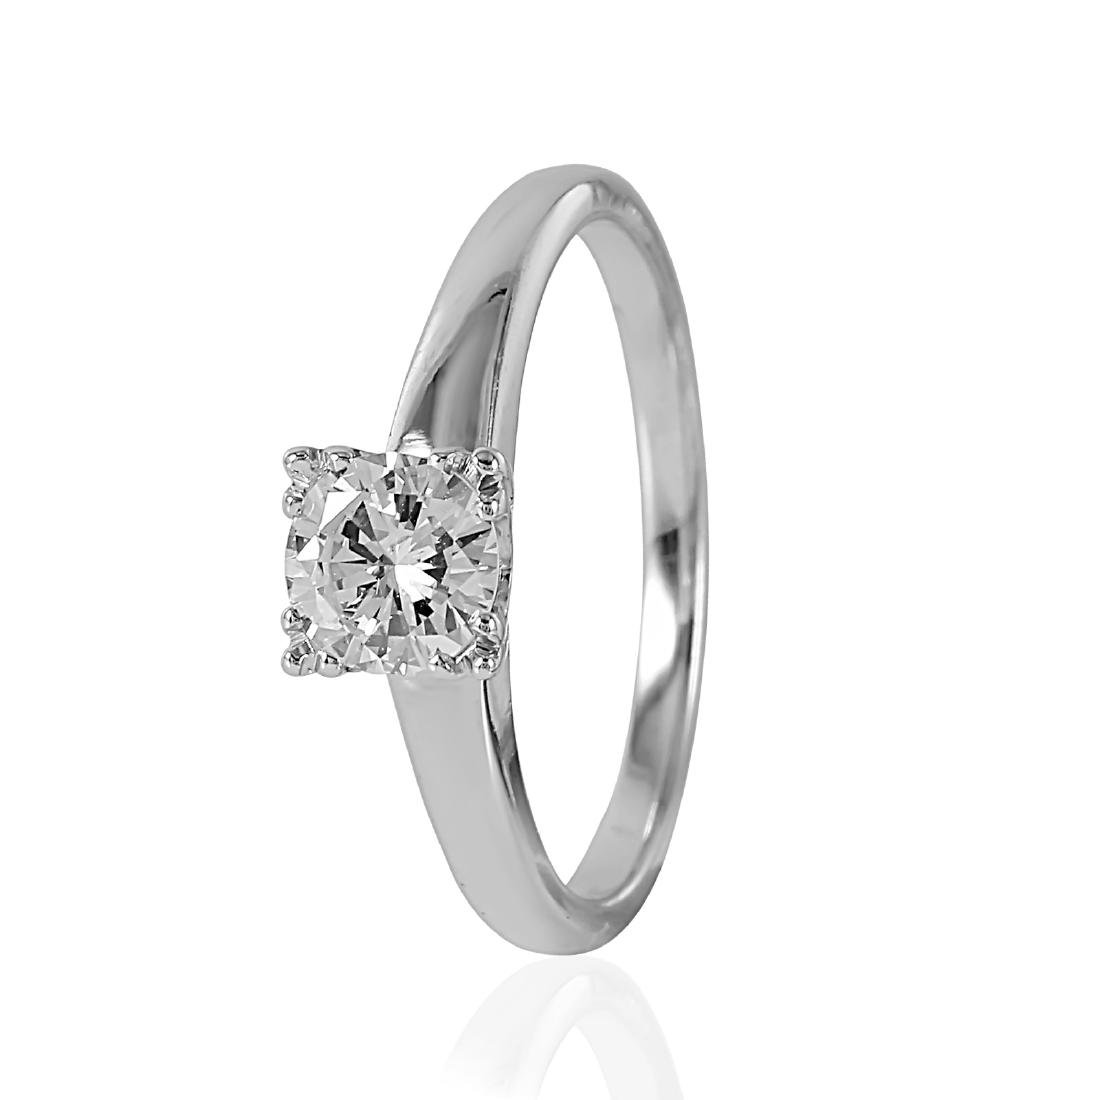 14KT White Gold Diamond Solitaire Ring